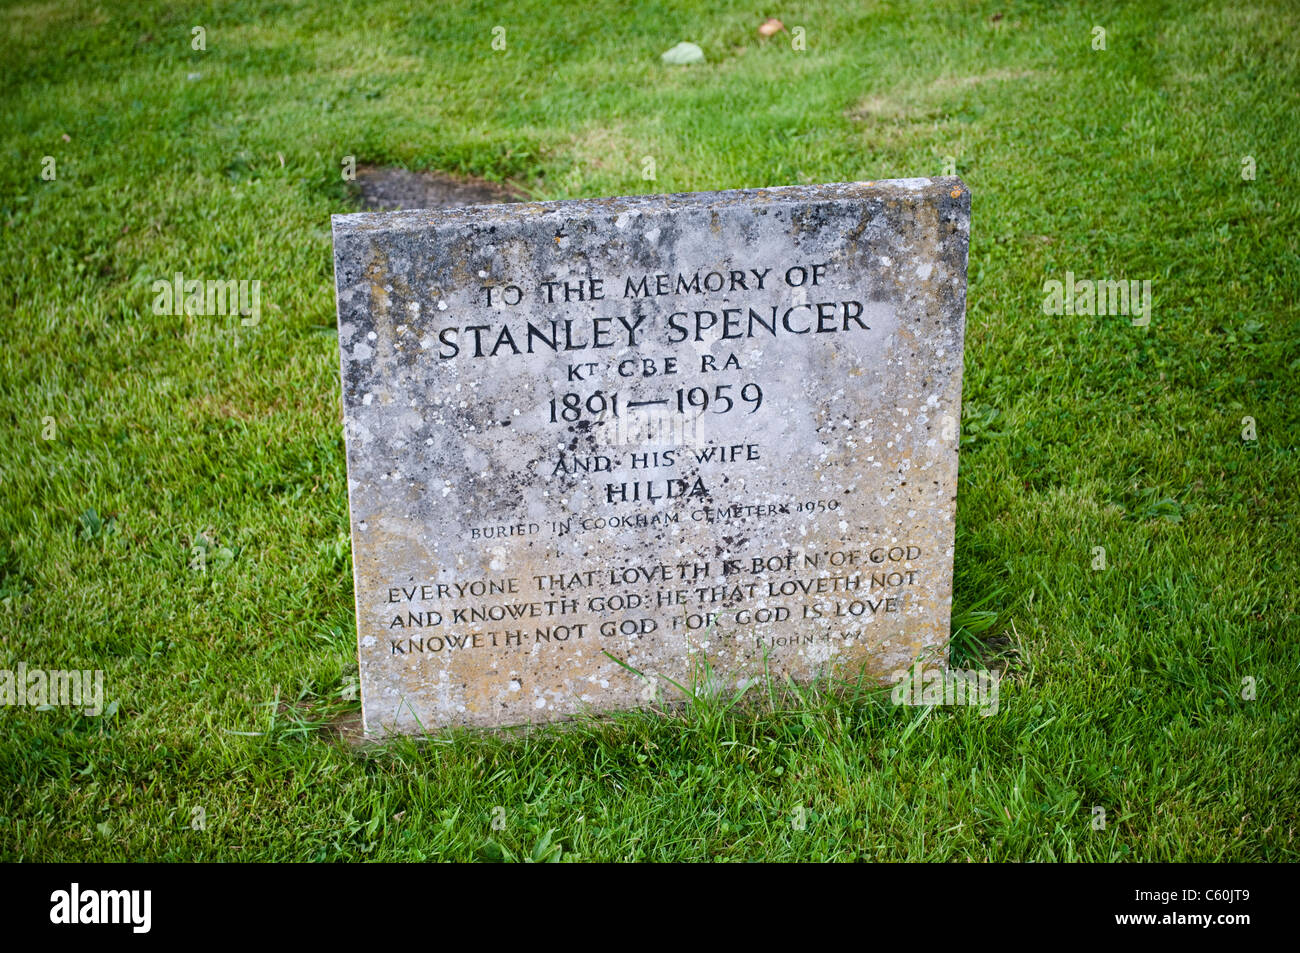 Gravestone of Stanley Spencer, Cookham, Berkshire, England, UK - Stock Image